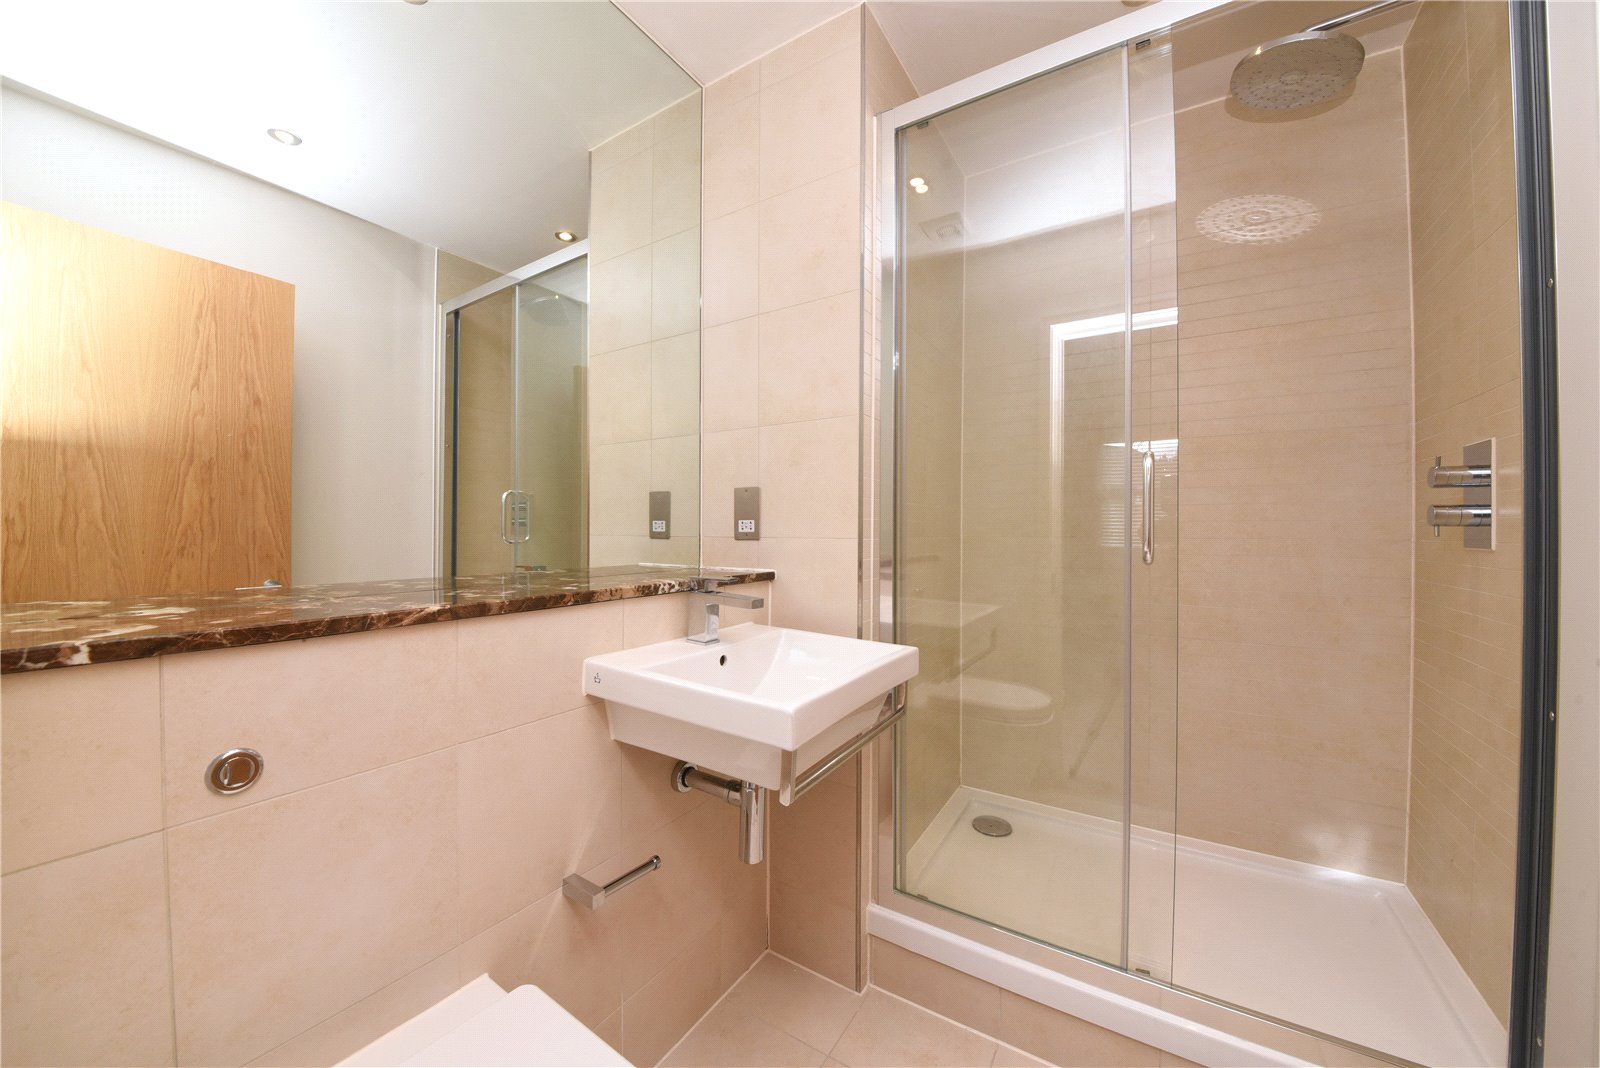 2 bed apartment for sale in Mill Hill East, NW7 1ND 7